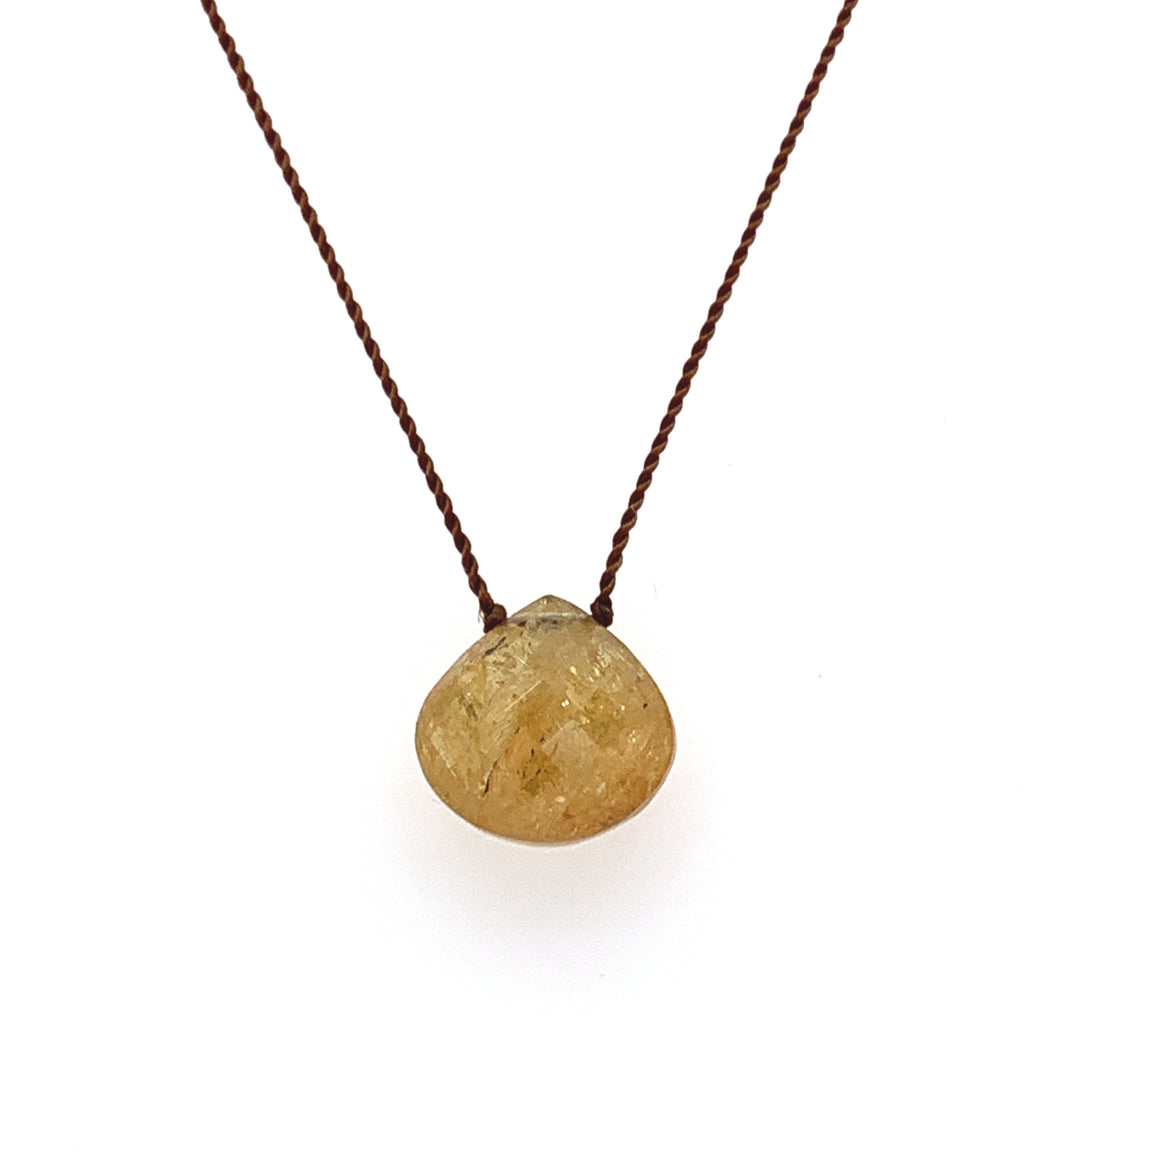 Faceted Droplet Necklace - Yellow Tourmaline